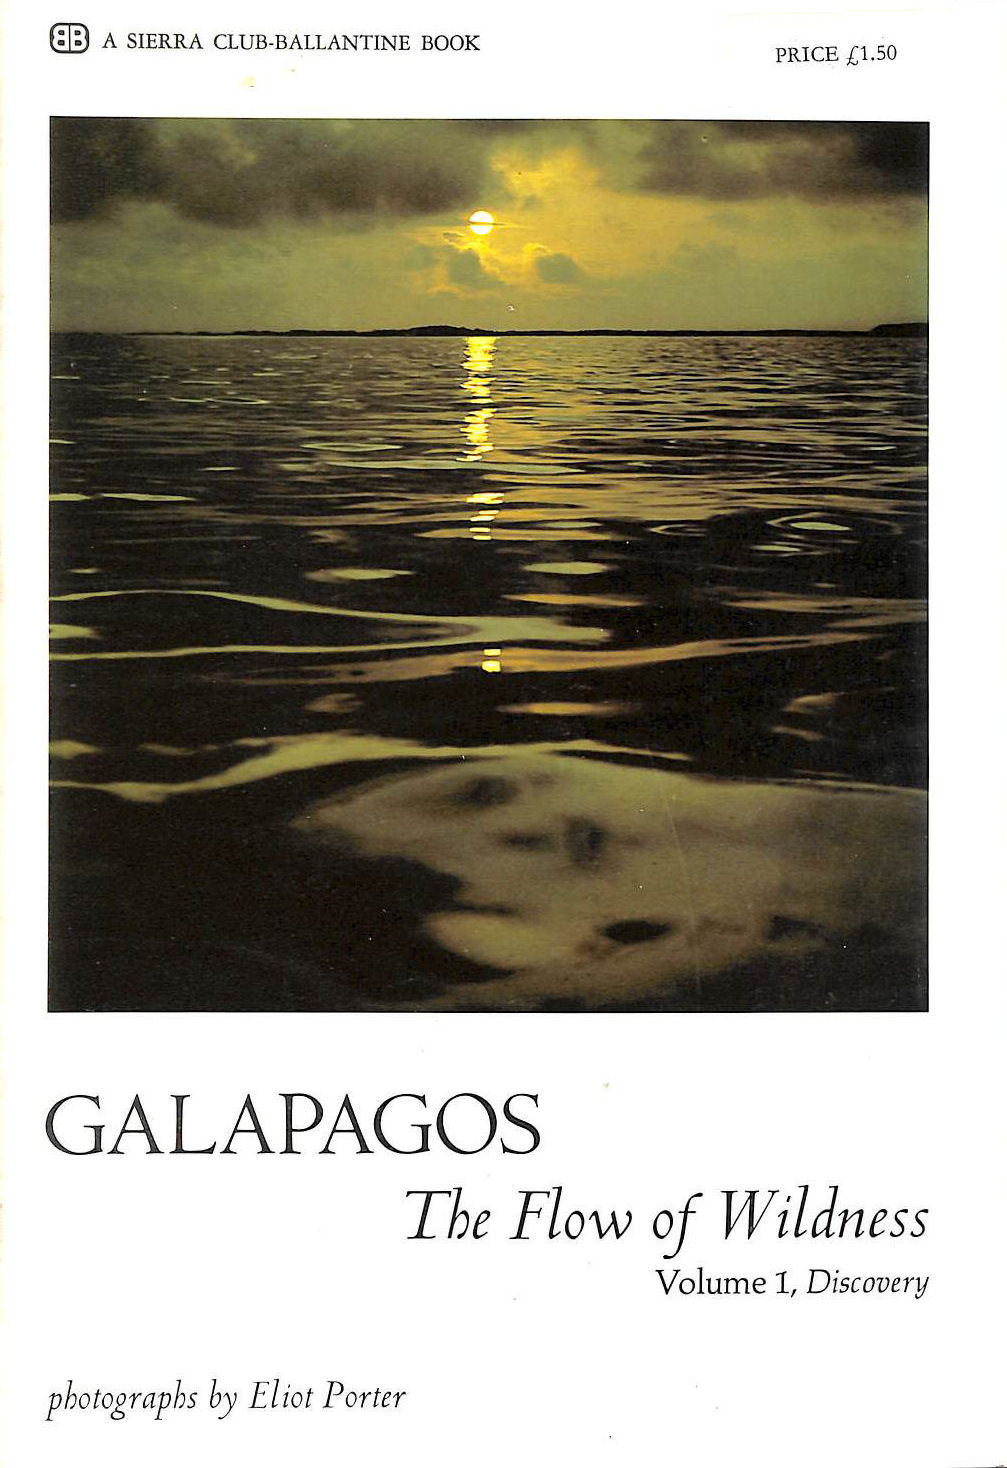 Image for Galapagos The Flow Of Wildness Volume 1, Discovery